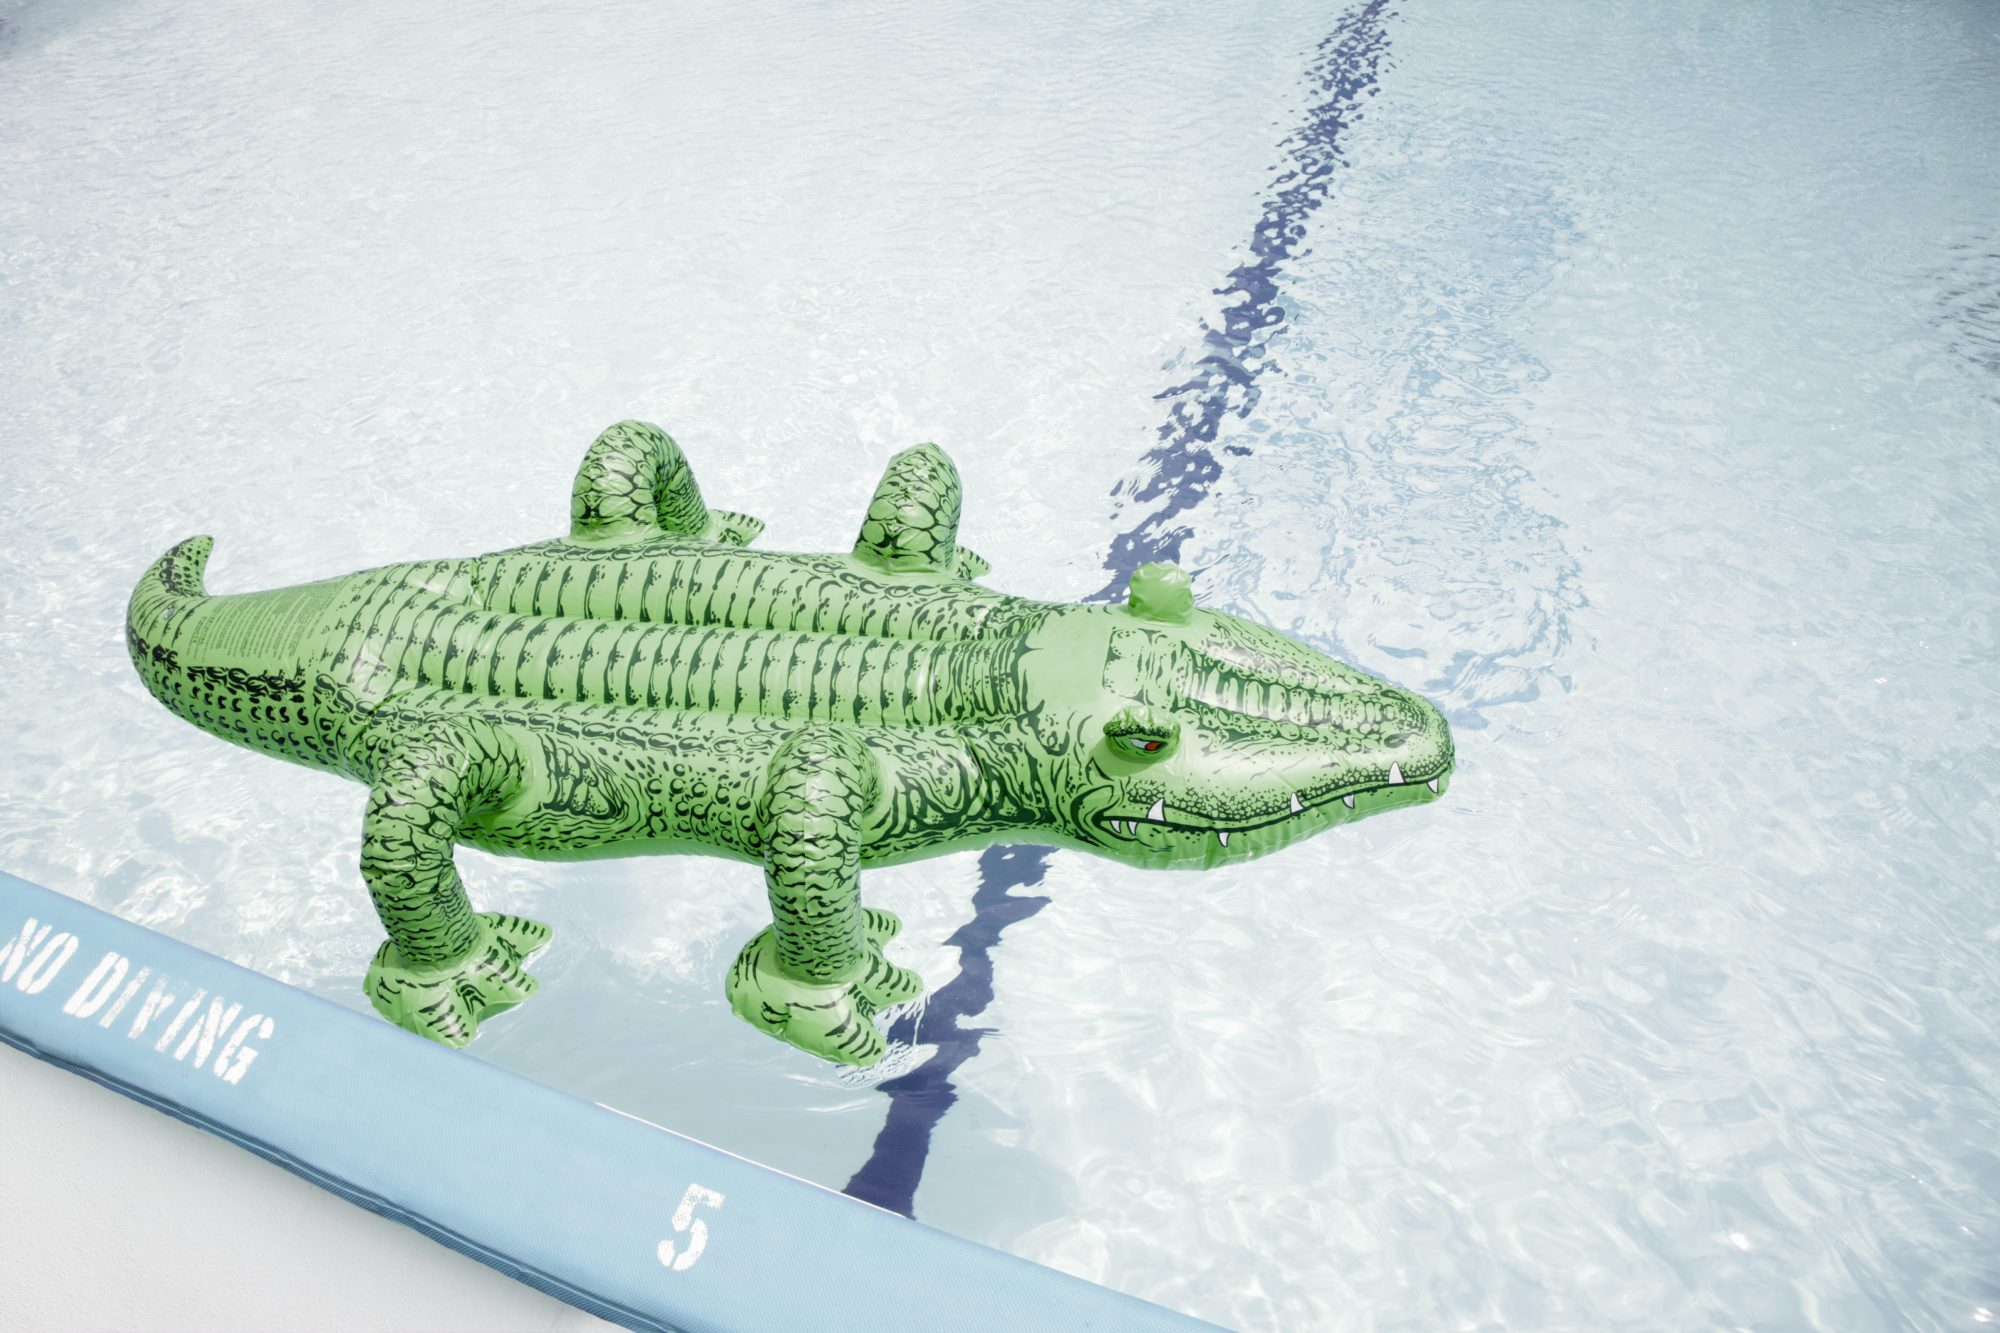 Alligator in Pool